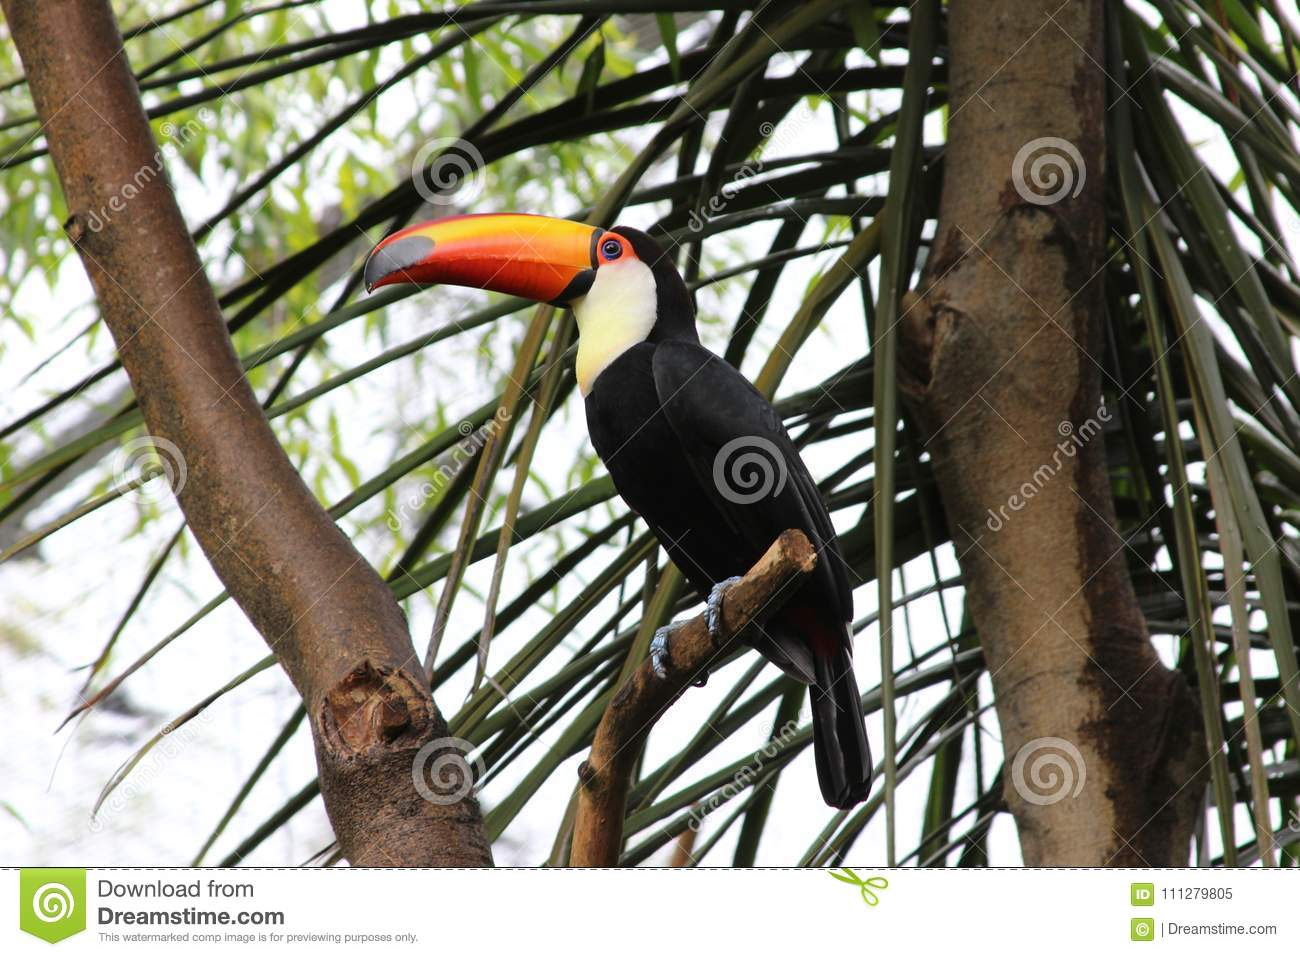 Toucan sitting in the tree